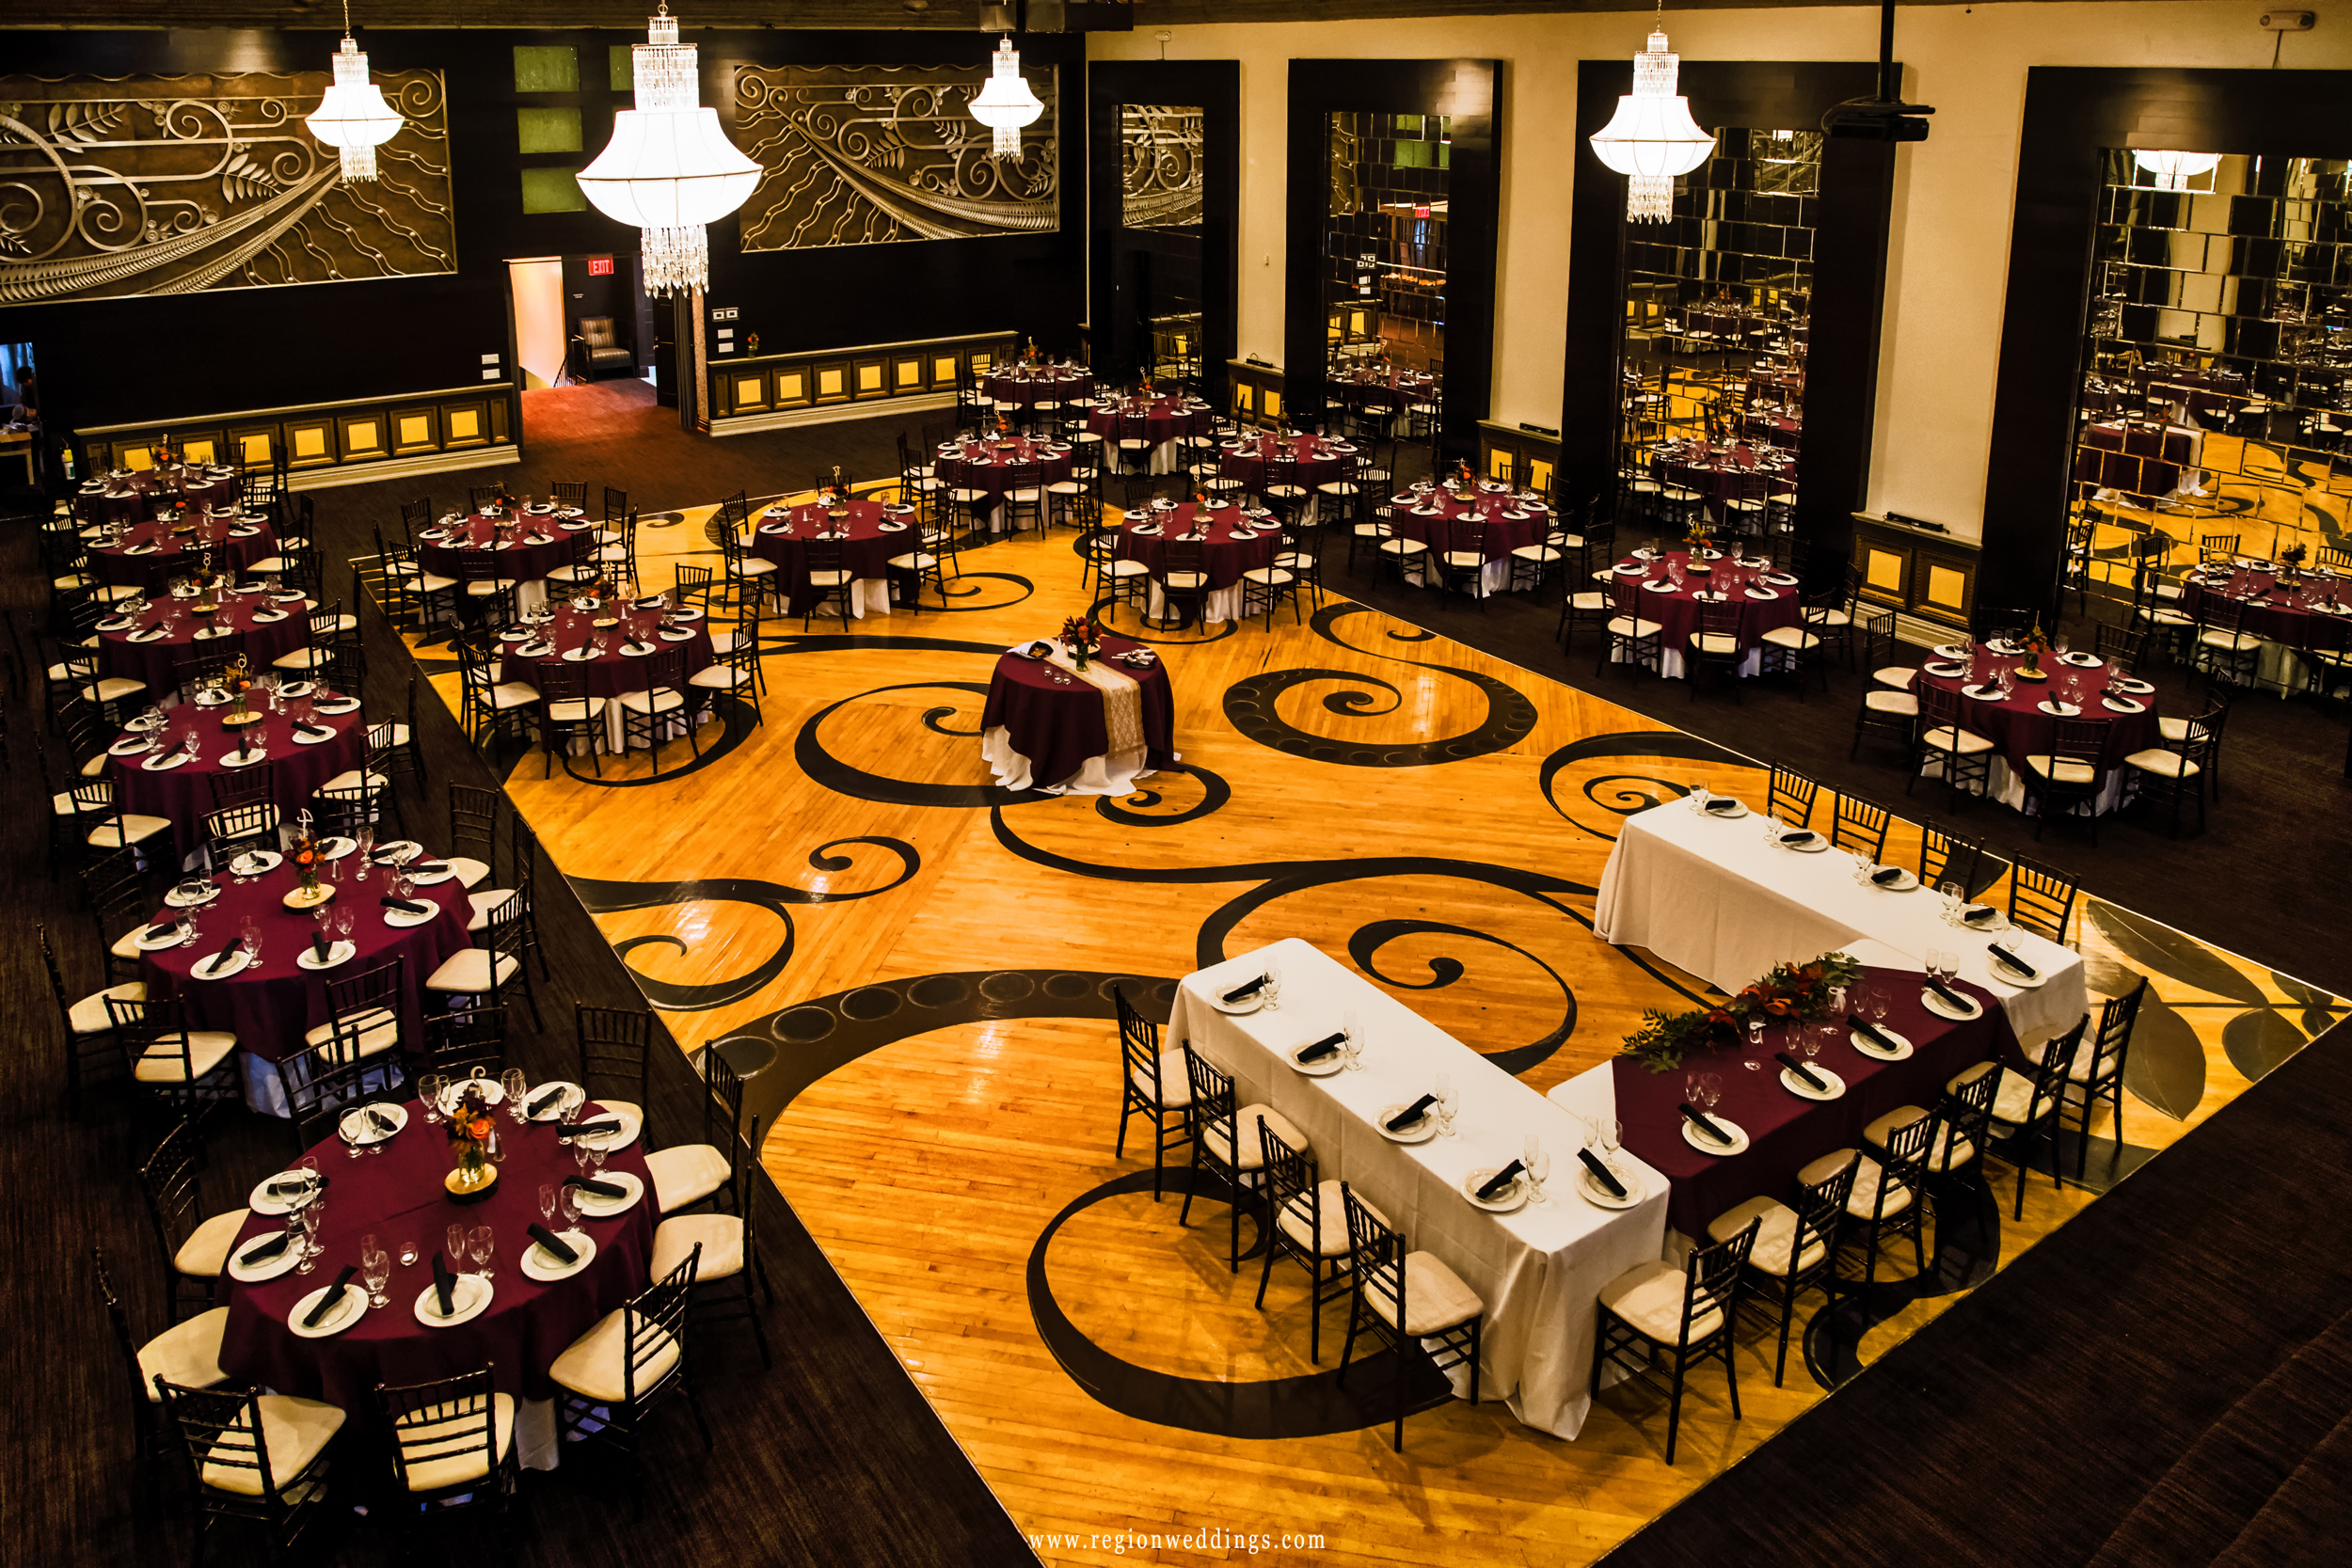 The Allure ballroom decorated for a Fall wedding.